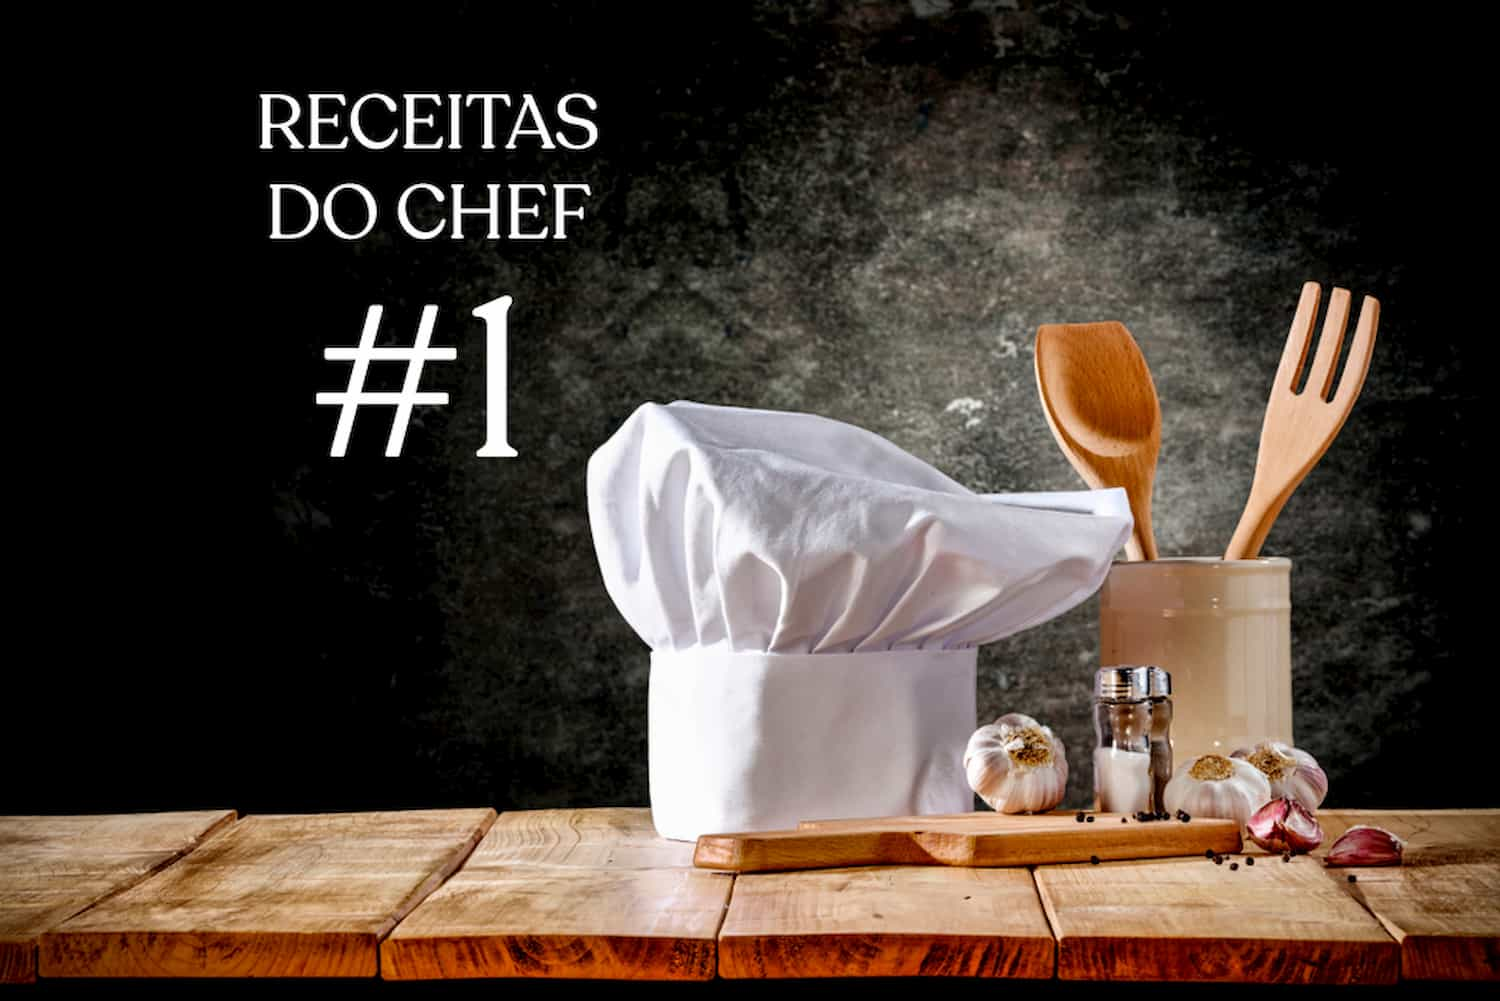 #1 Receitas do Chef - Penne ao pesto de rúcula